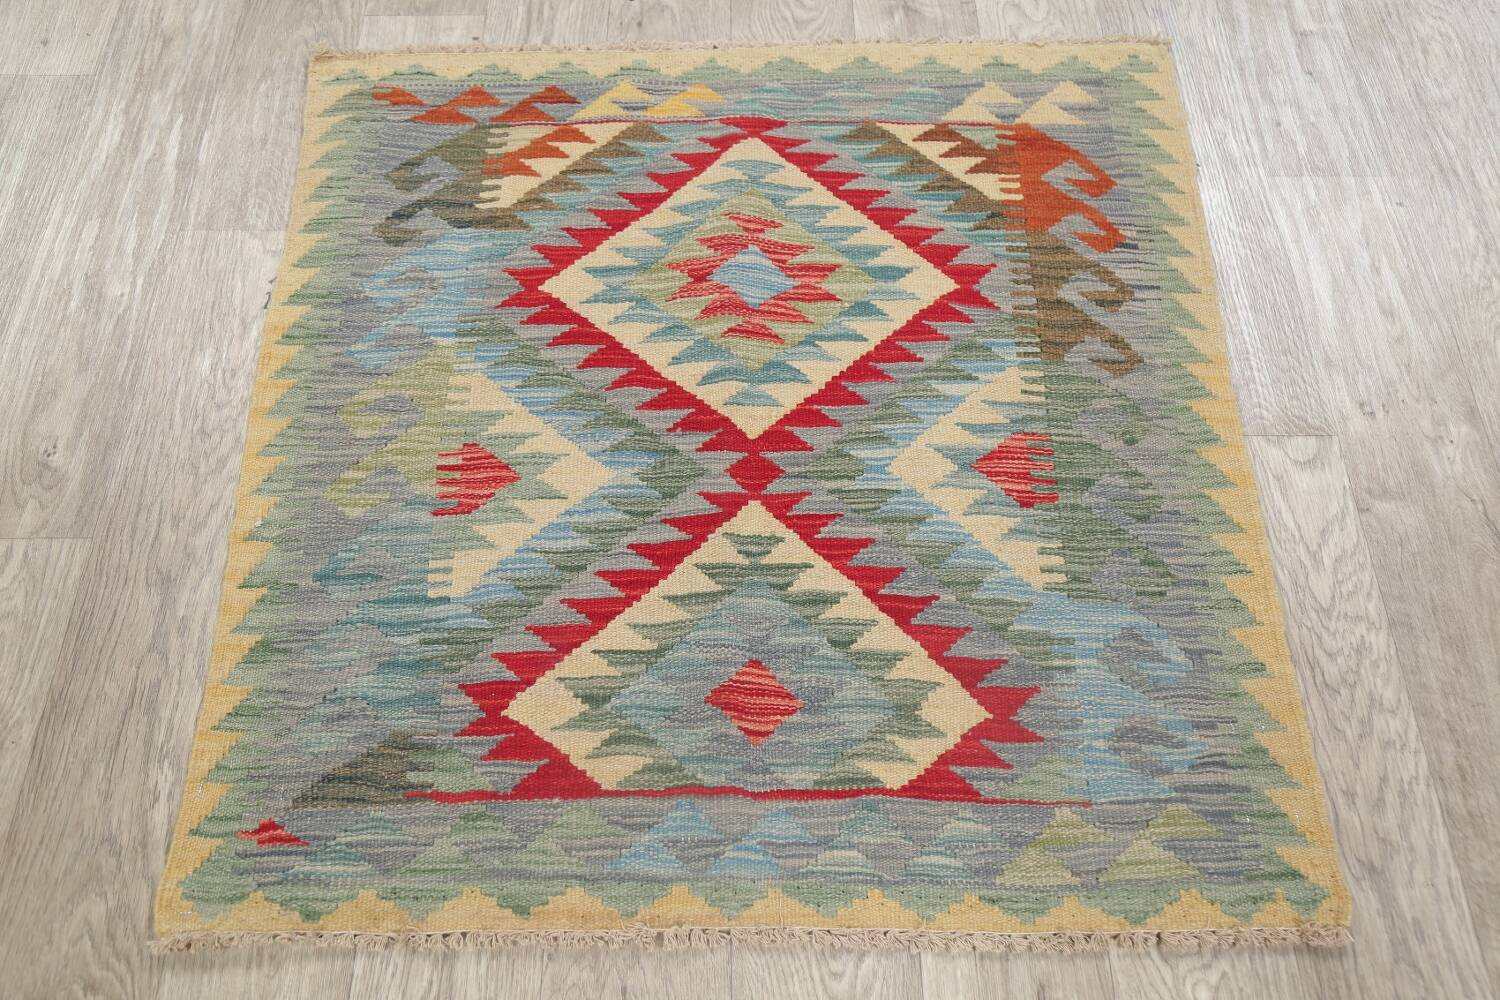 South-West Kilim Turkish Area Rug 3x3 Square image 2